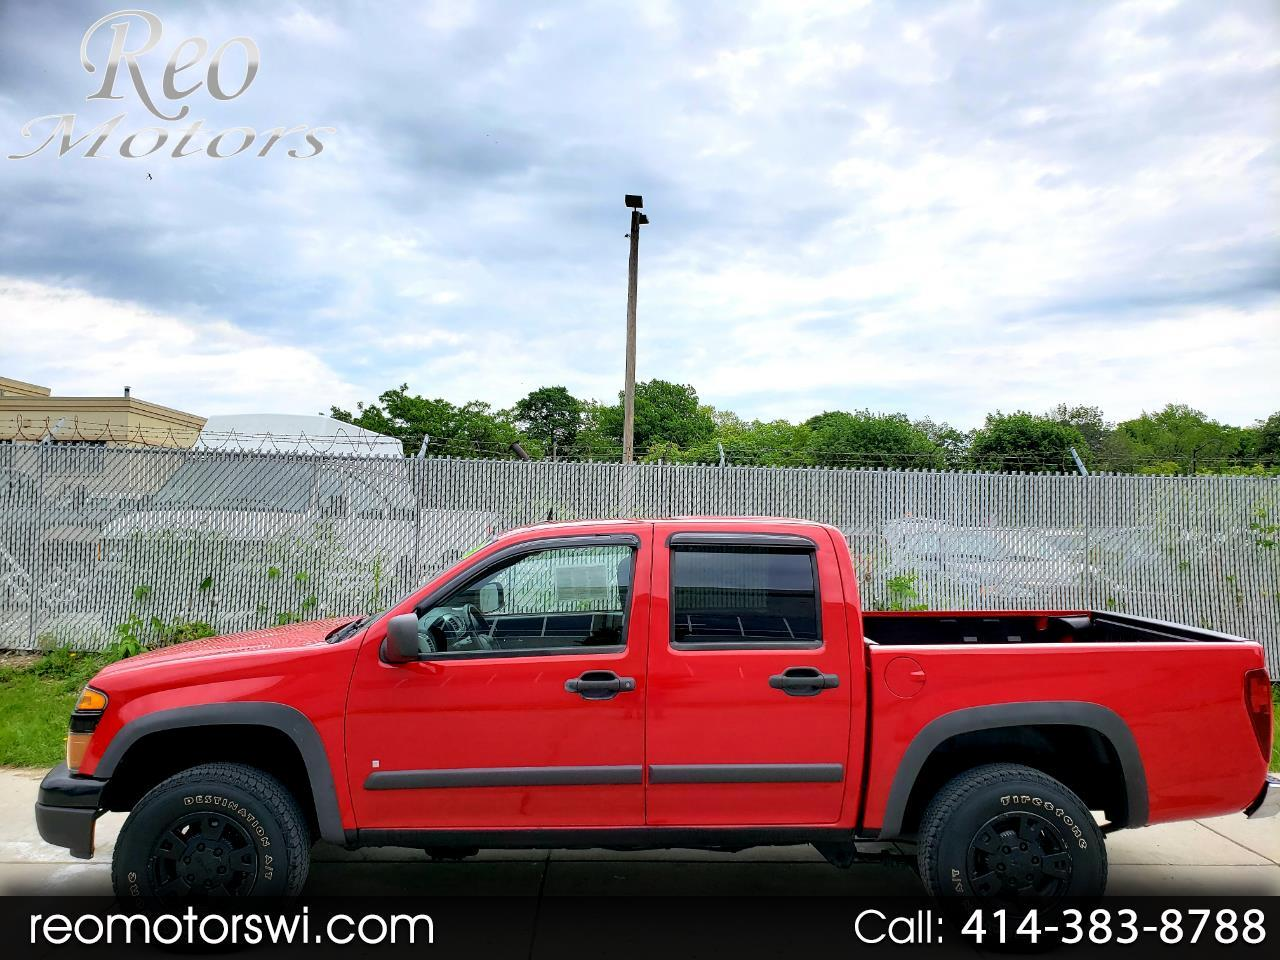 2008 GMC Canyon Crew Cab 4WD